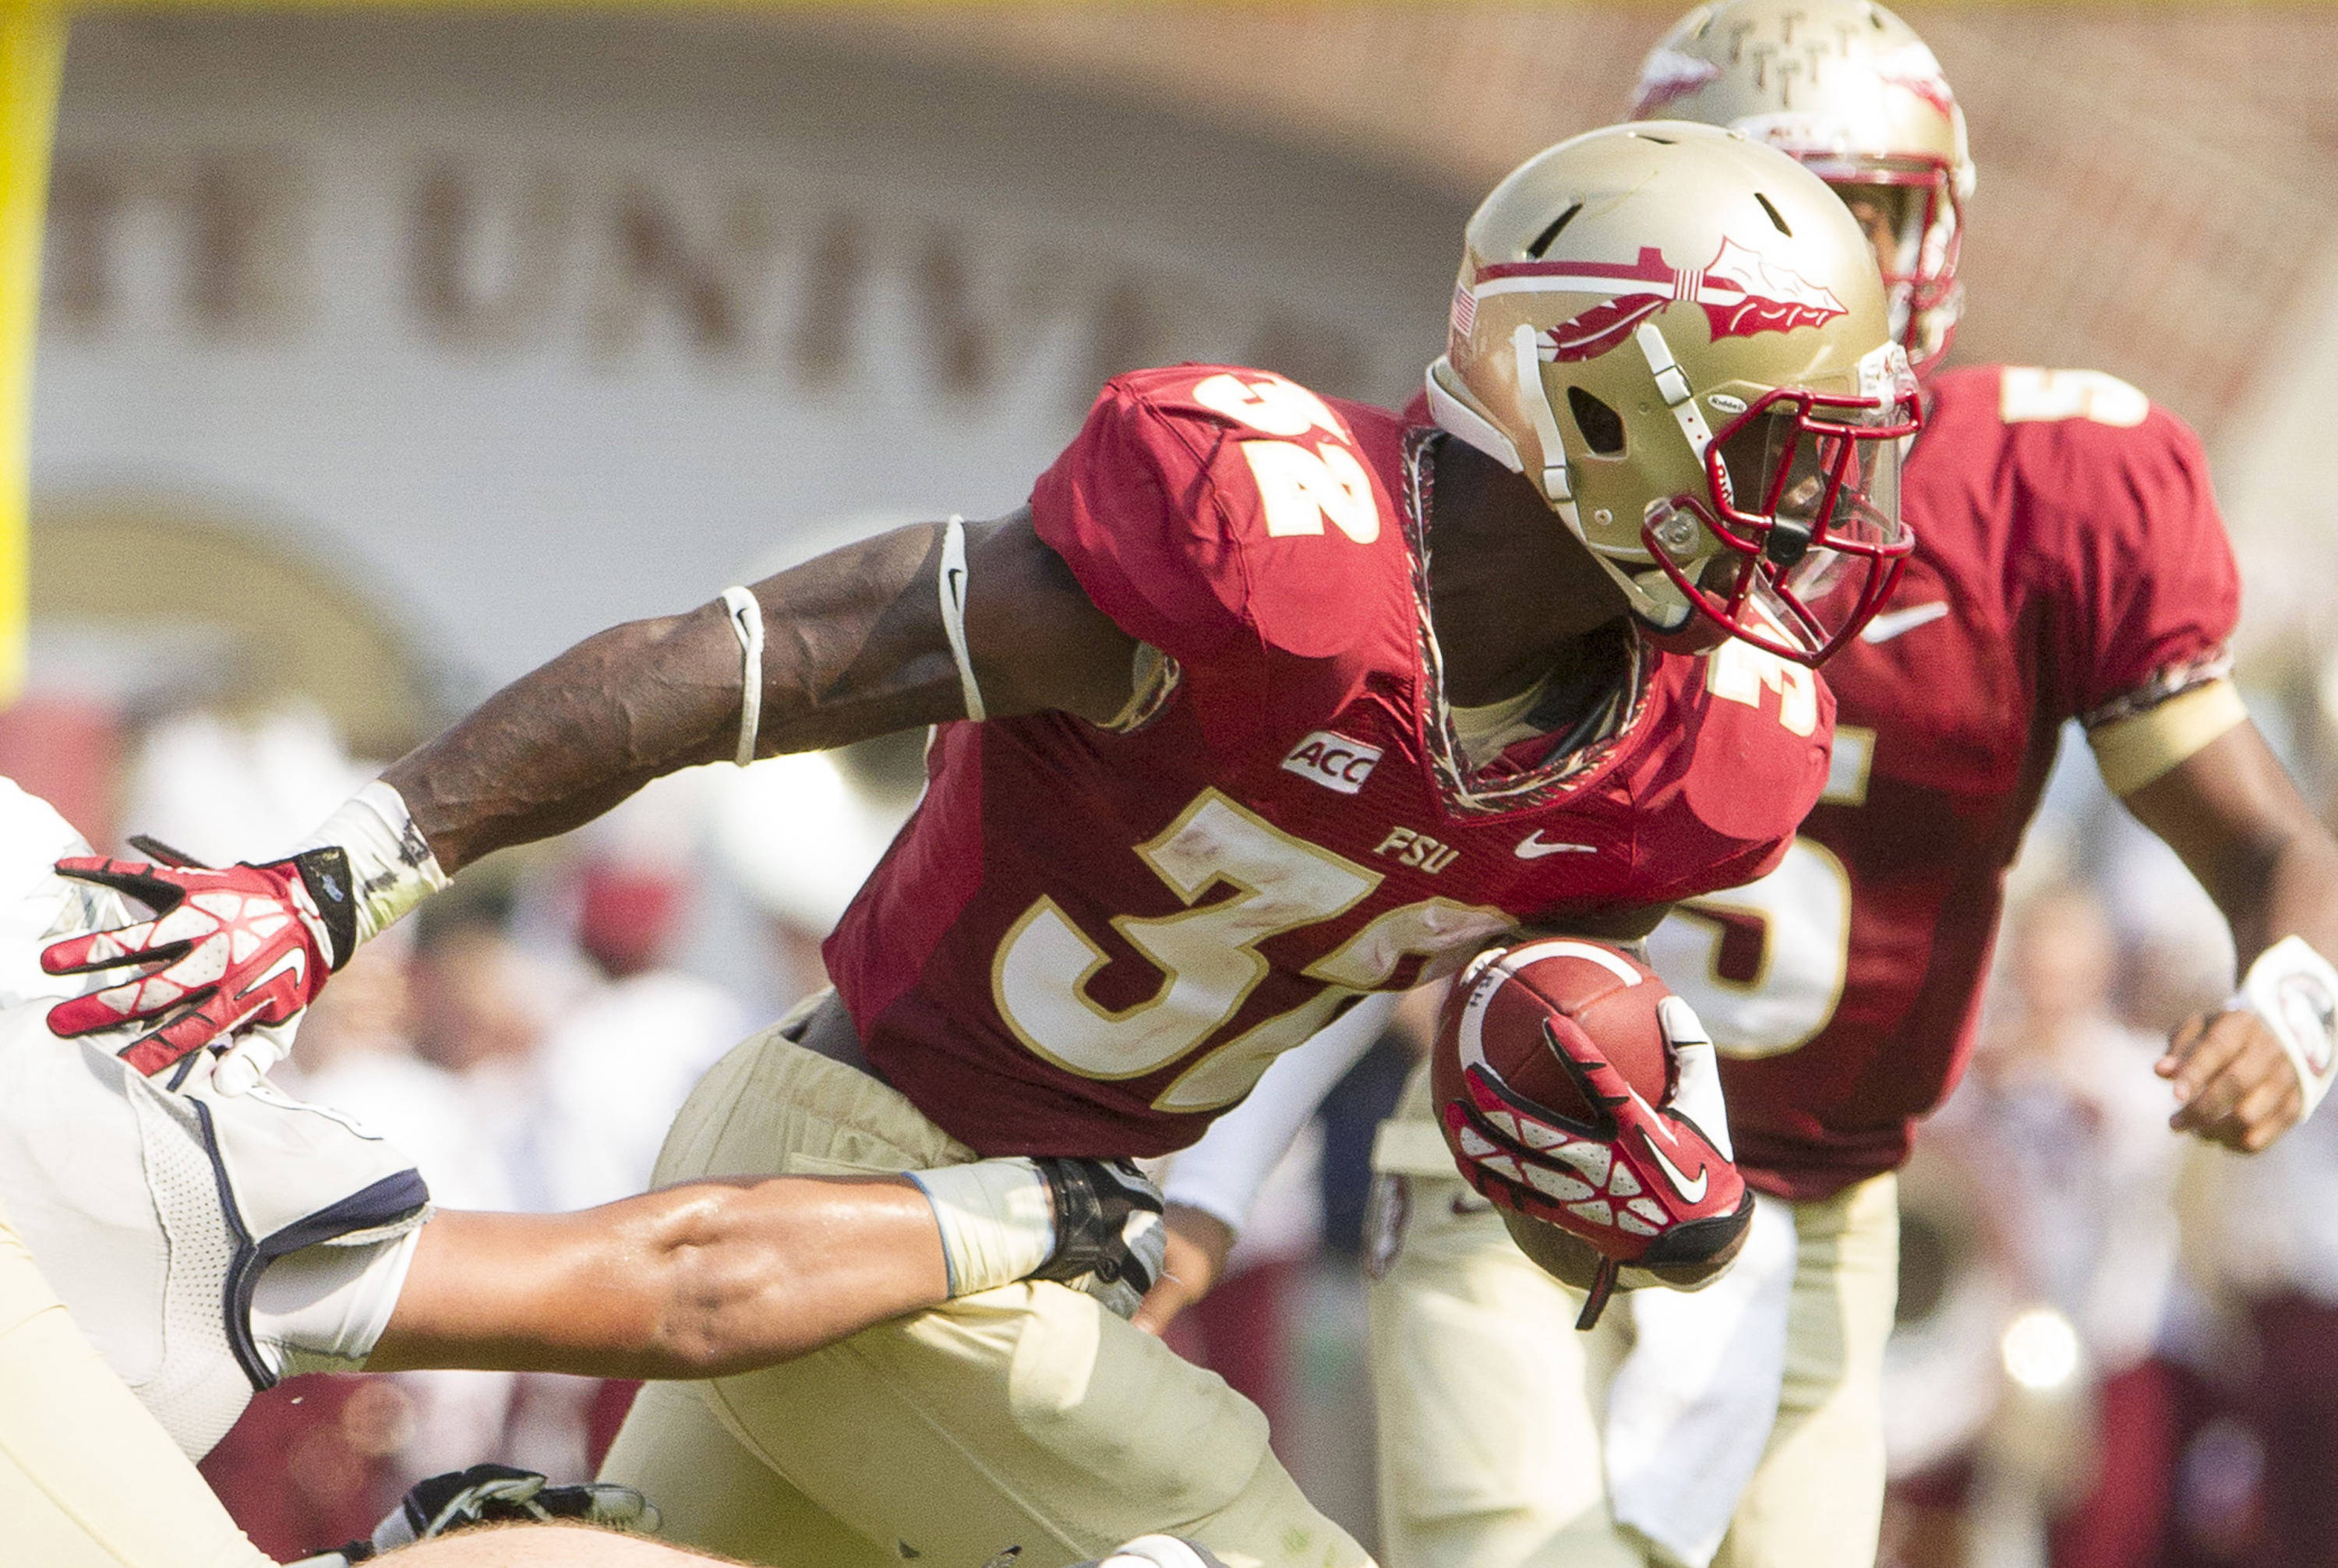 James Wilder, Jr. (32) carries the ball during FSU's 62-7 win over Nevada on Saturday, Sept 14, 2013 in Tallahassee, Fla.